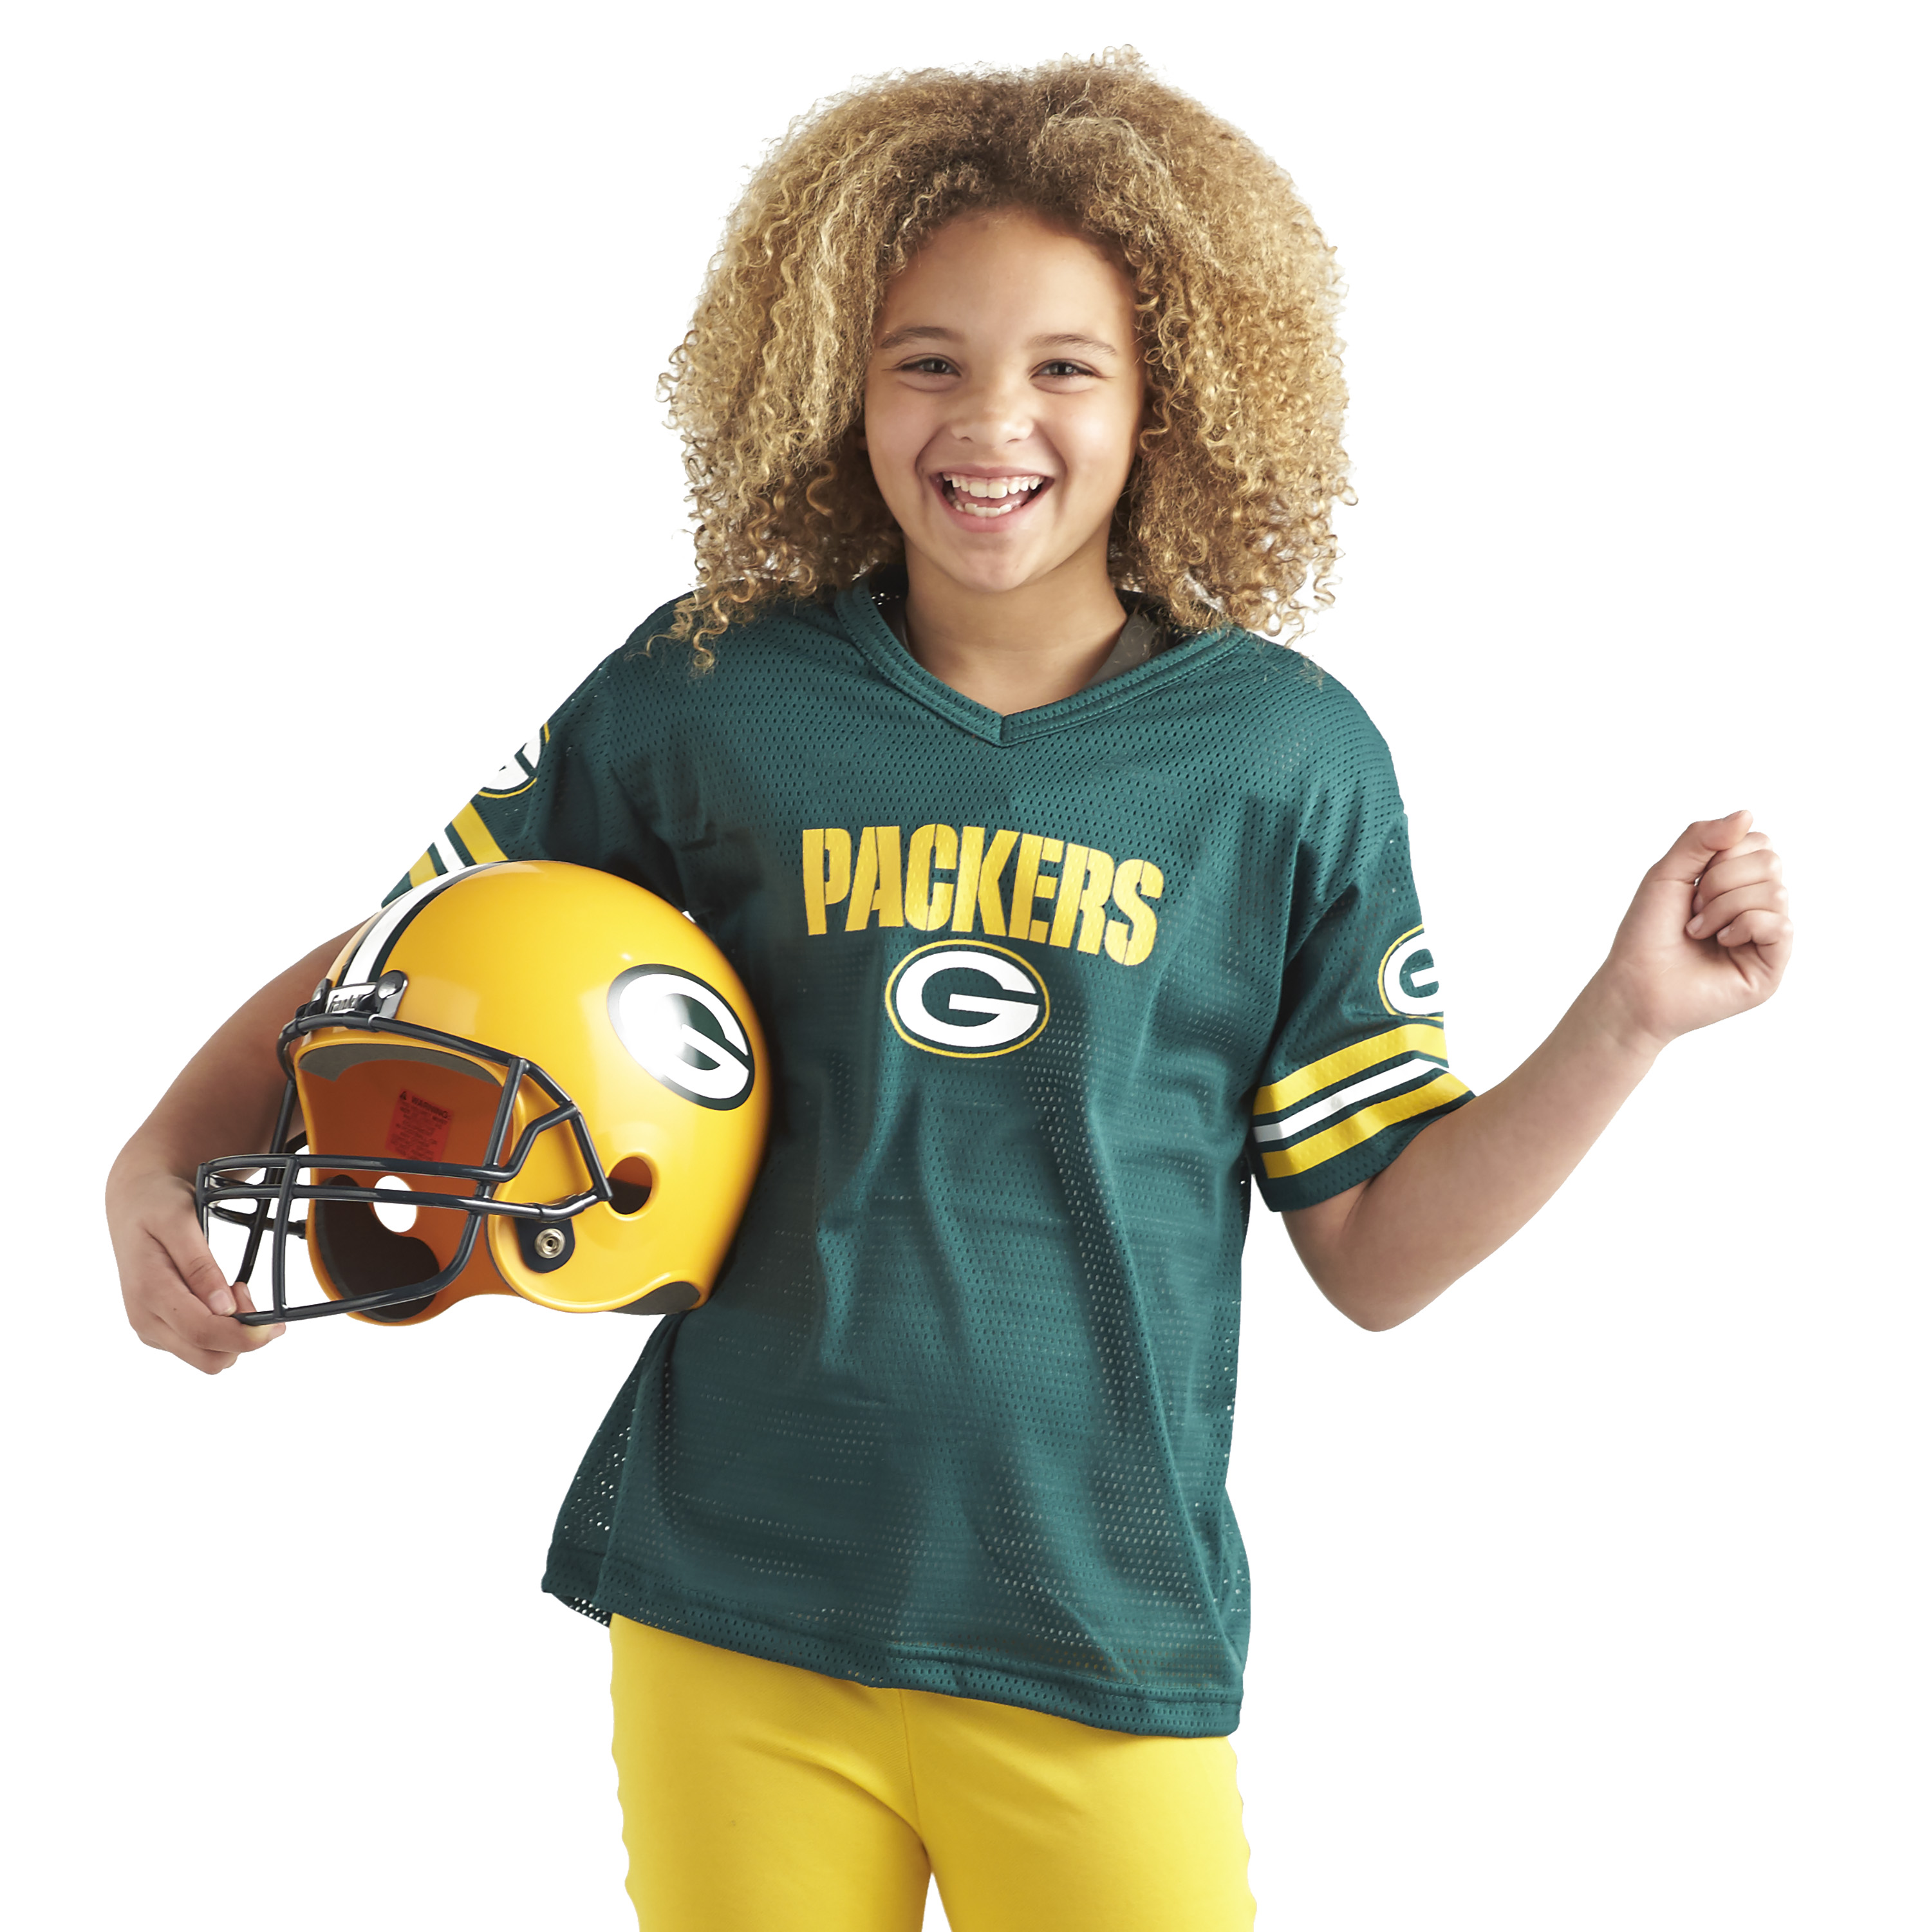 ce04274f Kids Green Bay Packers Costume Helmet NFL Football Youth Sports ...